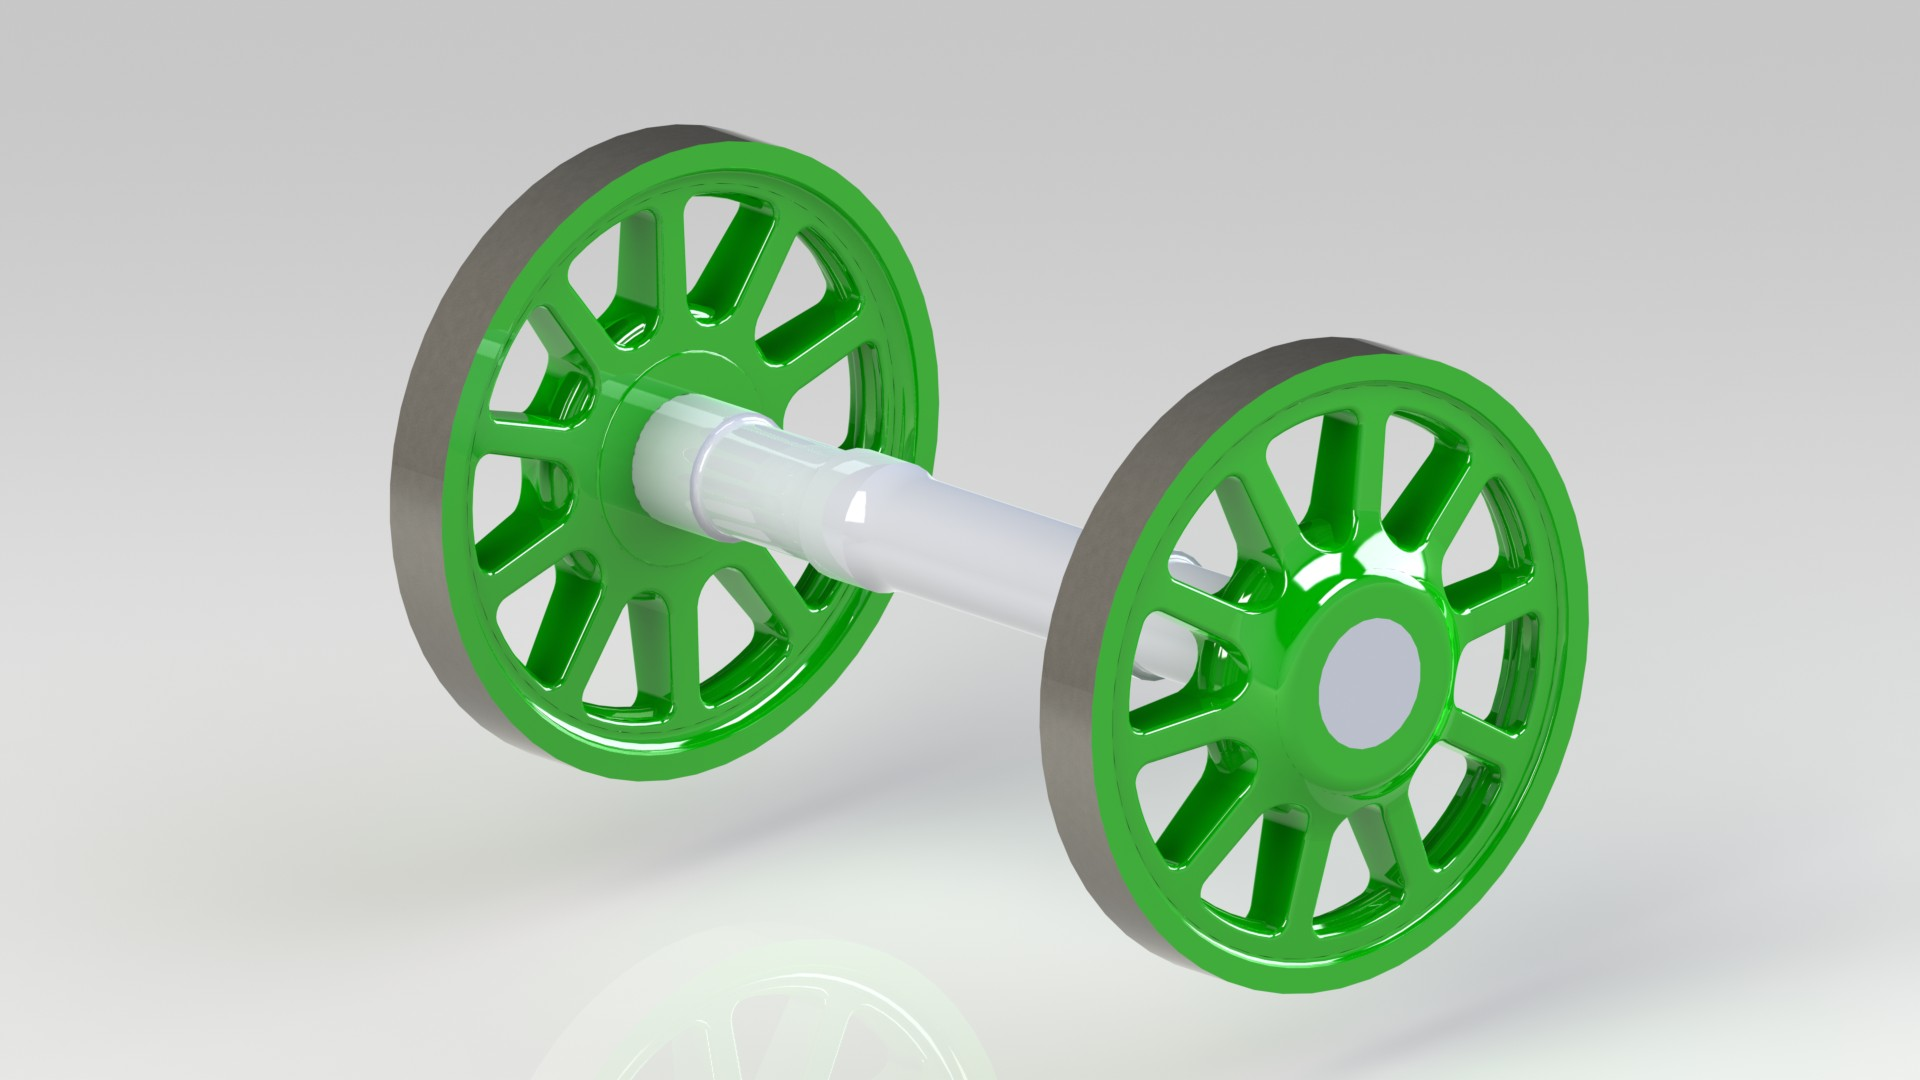 CAD render of the wheels